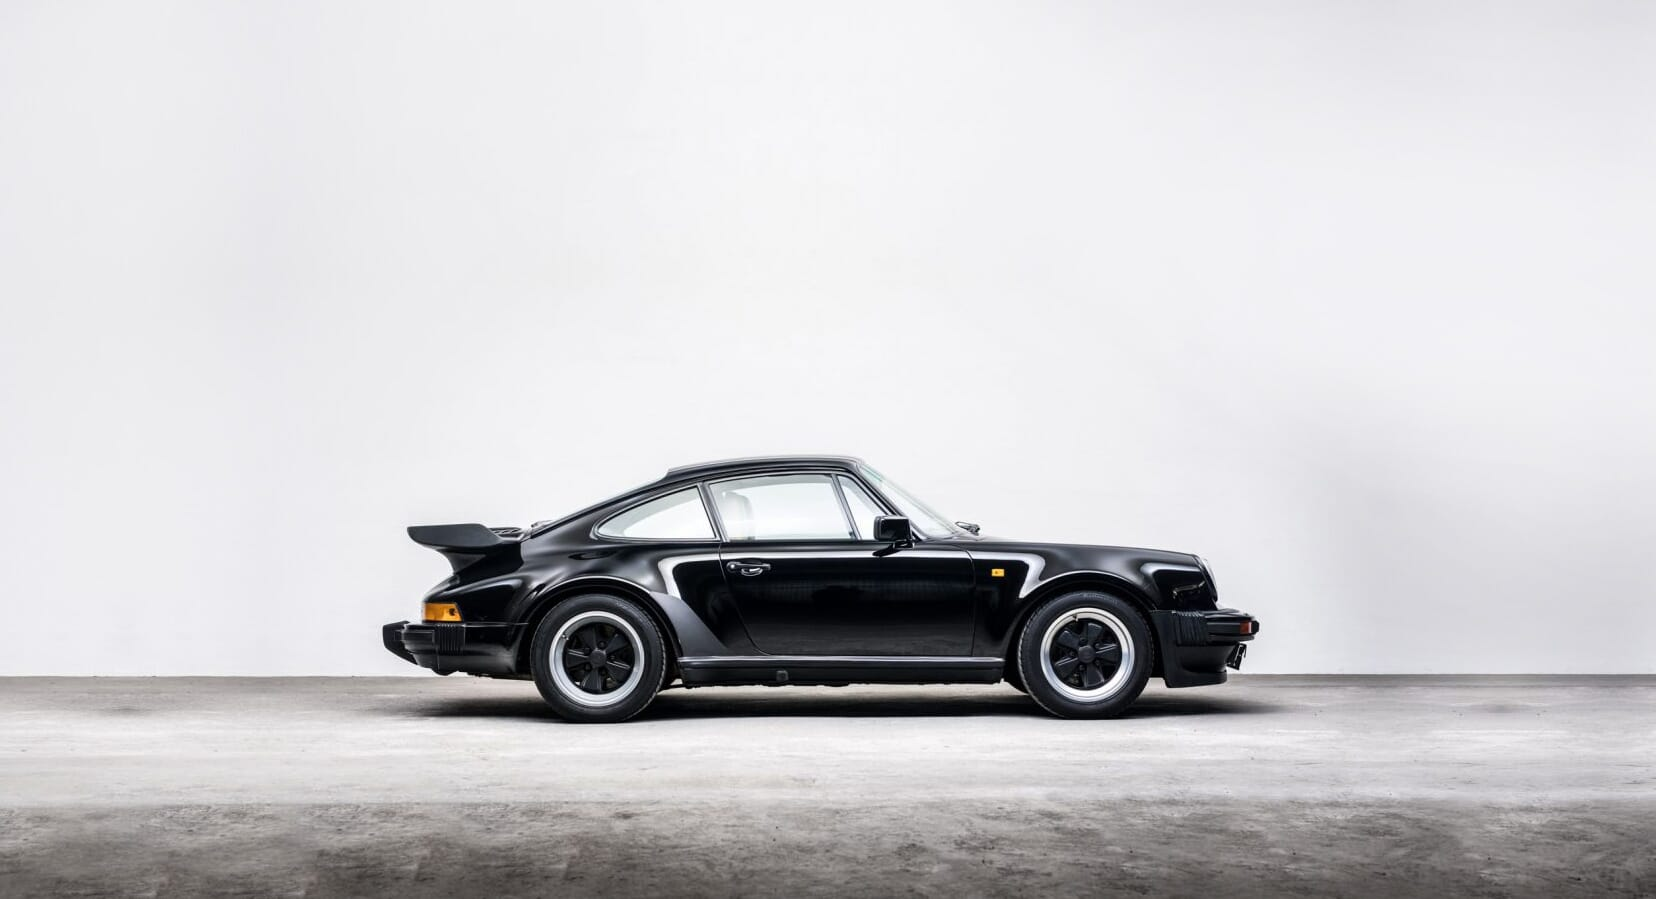 Classic Car Find of the Week: The 1989 Porsche 911 Turbo by Weekend Heroes